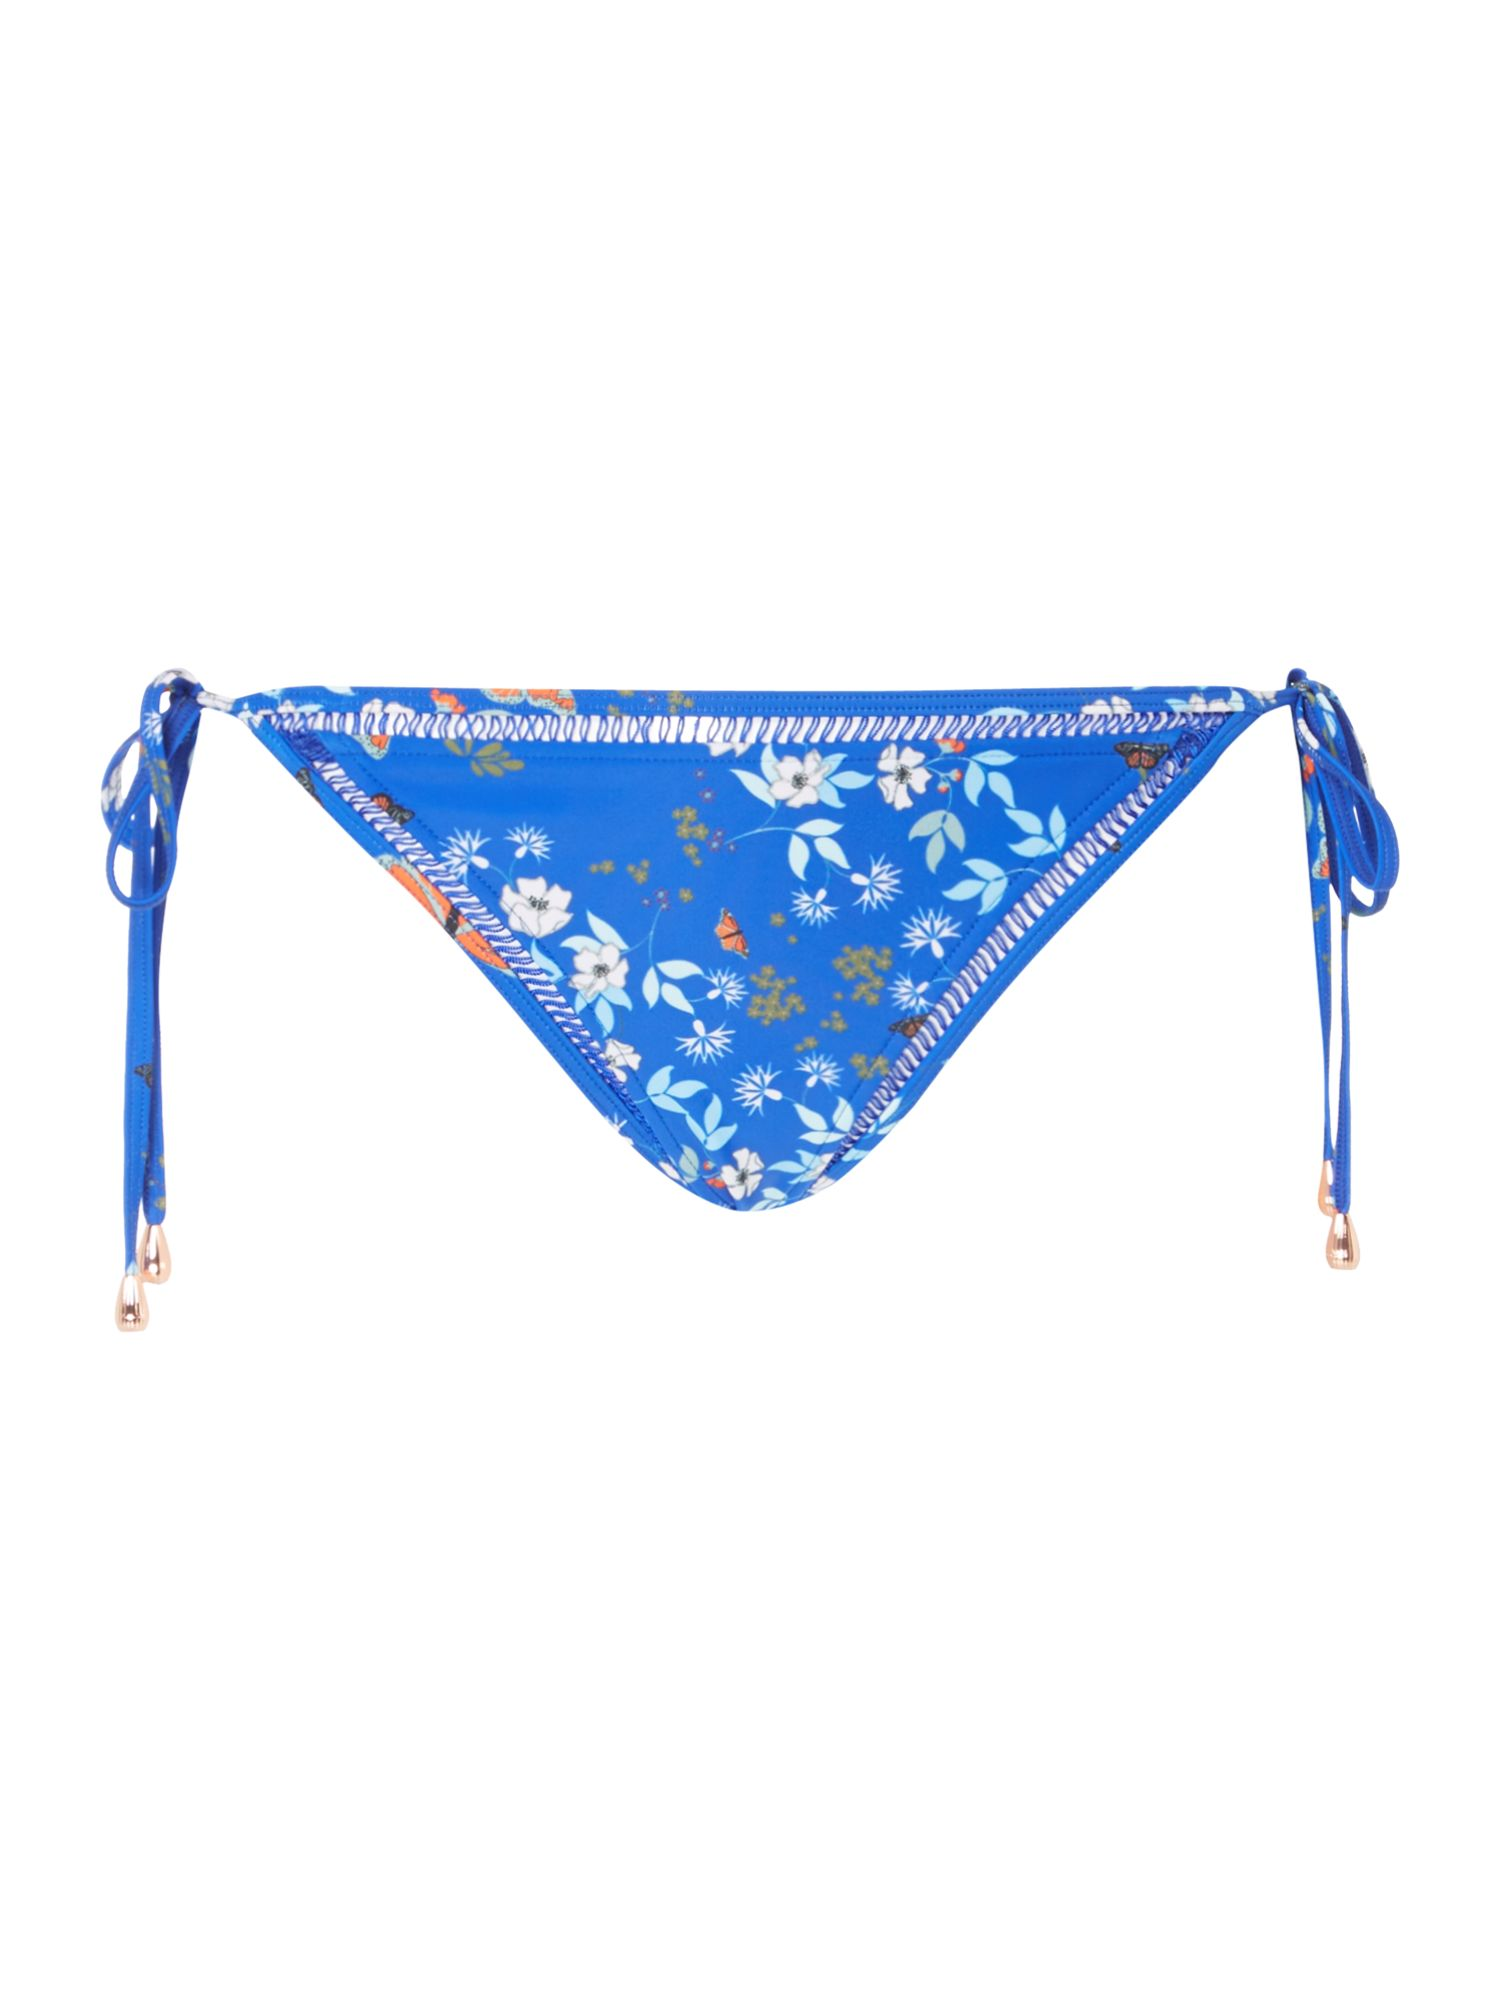 Ted Baker Kyoto gardens cut out tie side bikini brief, Bright Blue